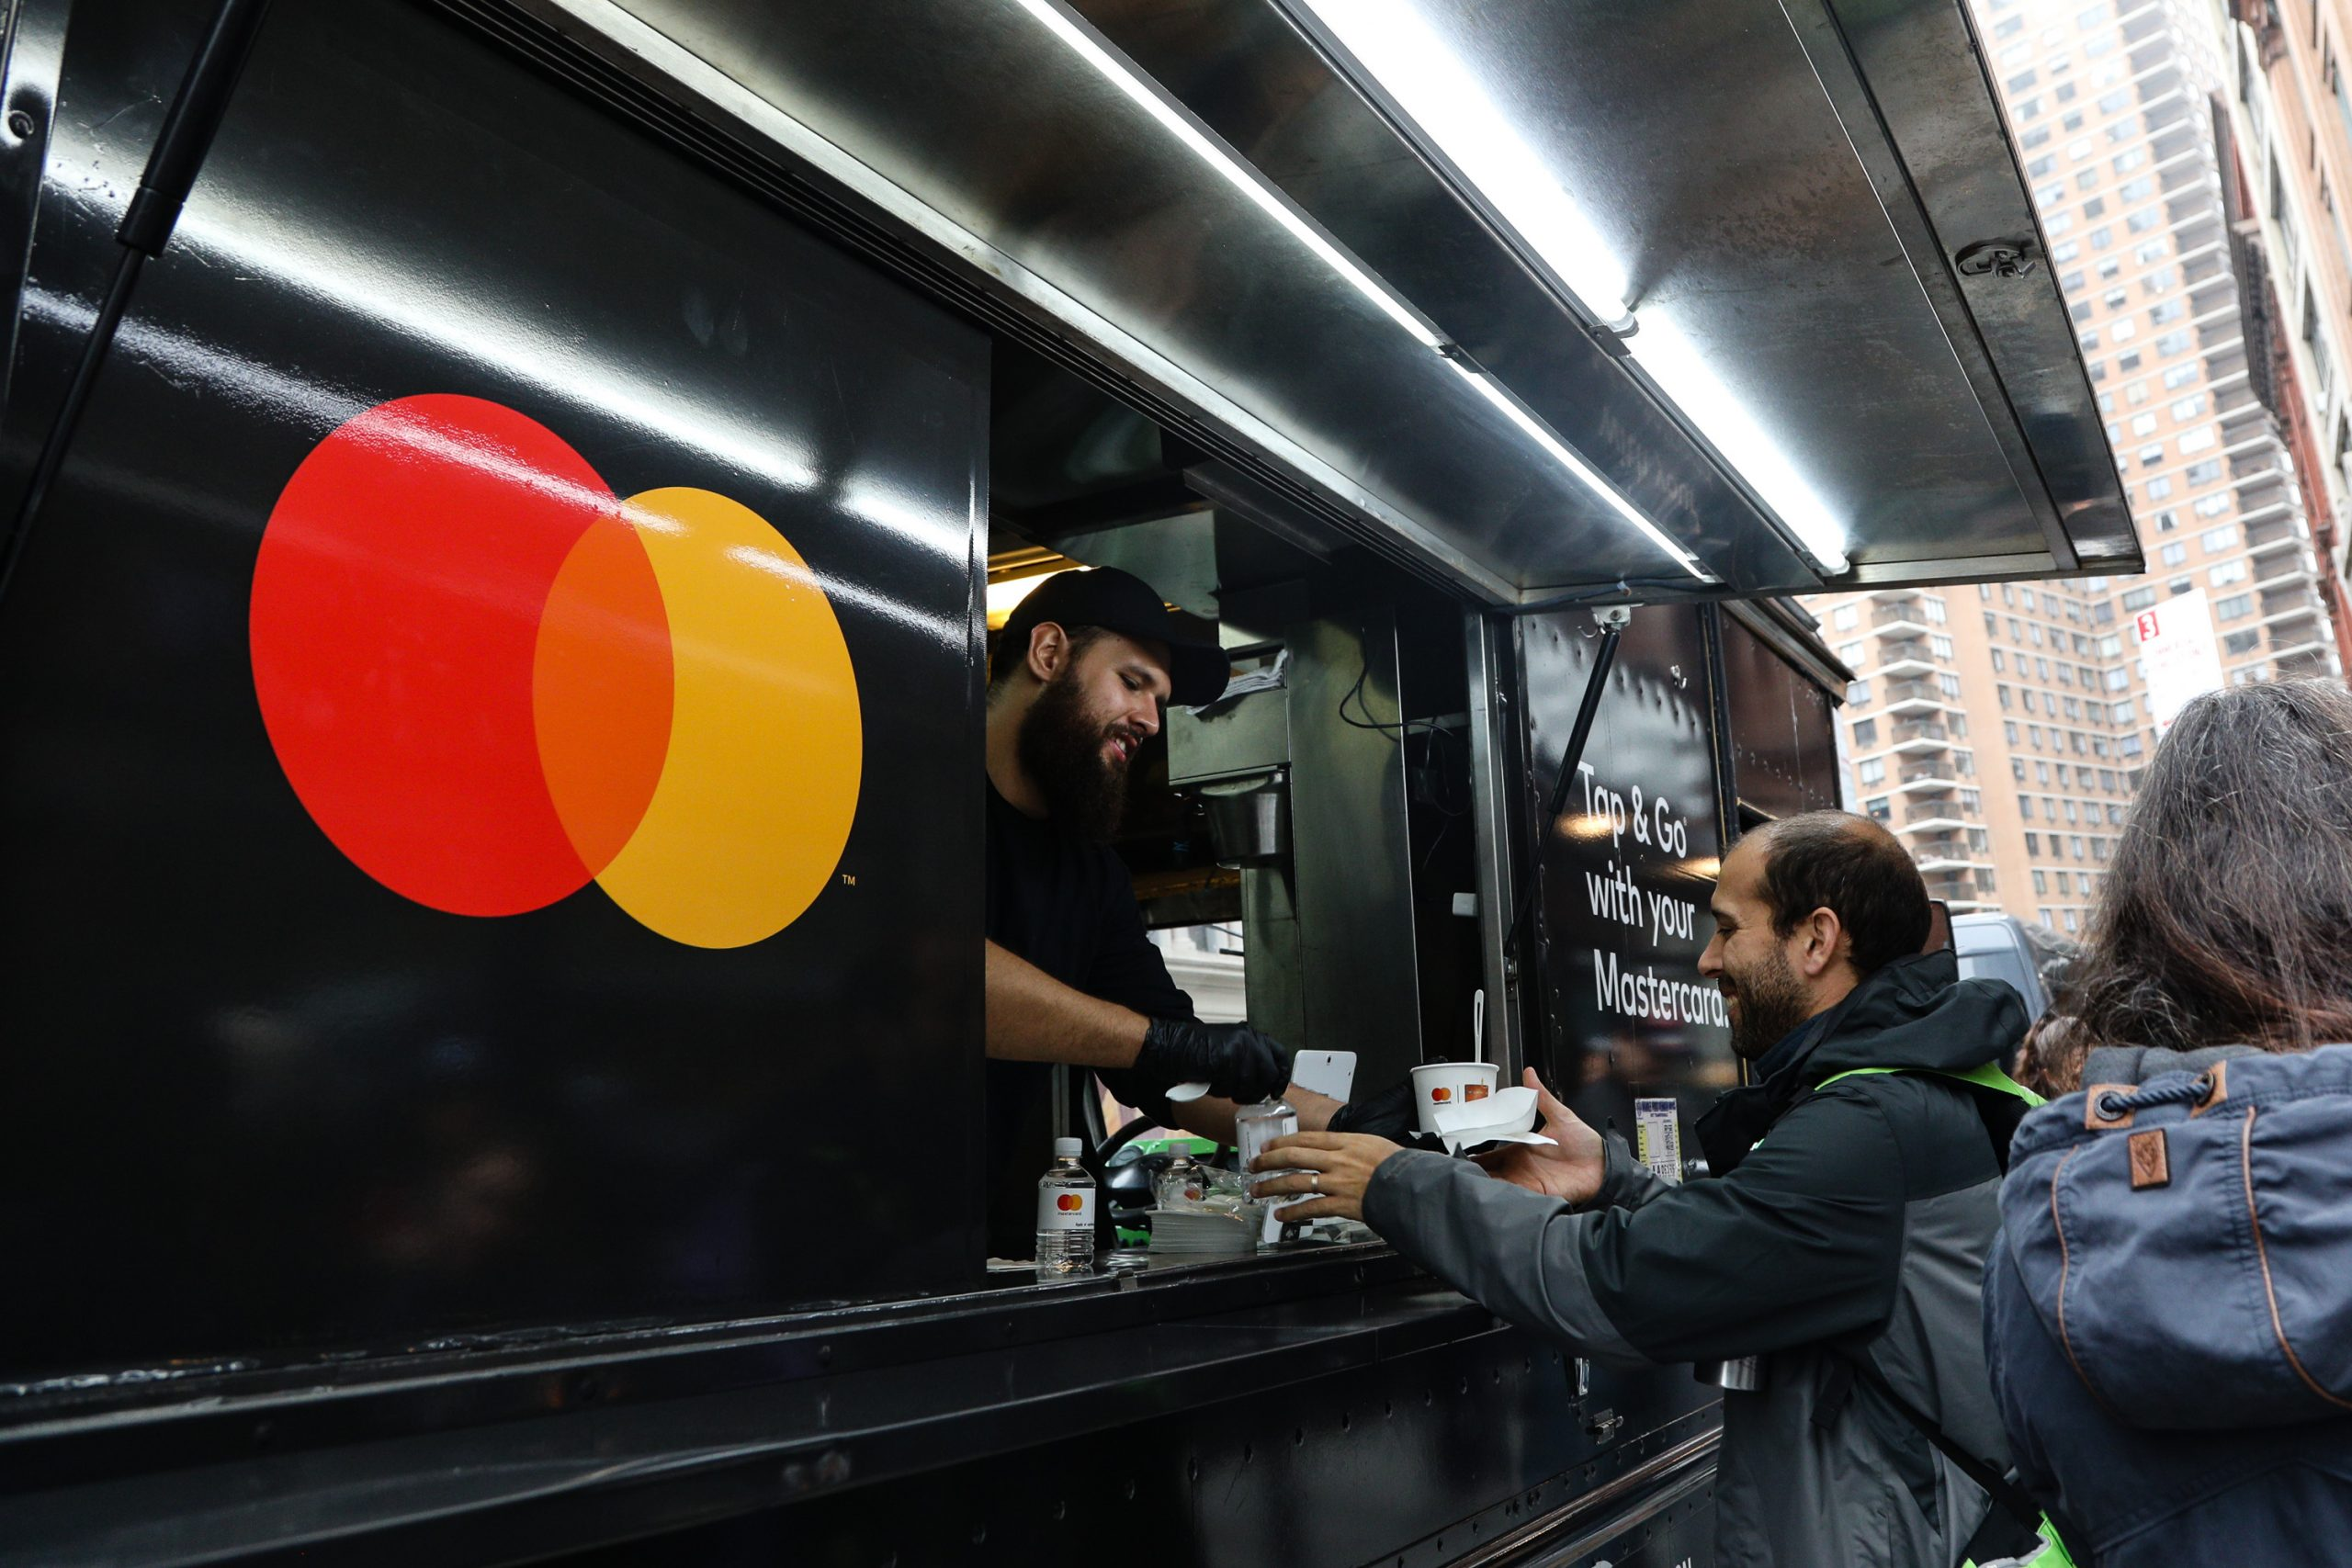 Mastercard Promotional Vehicle Case Study